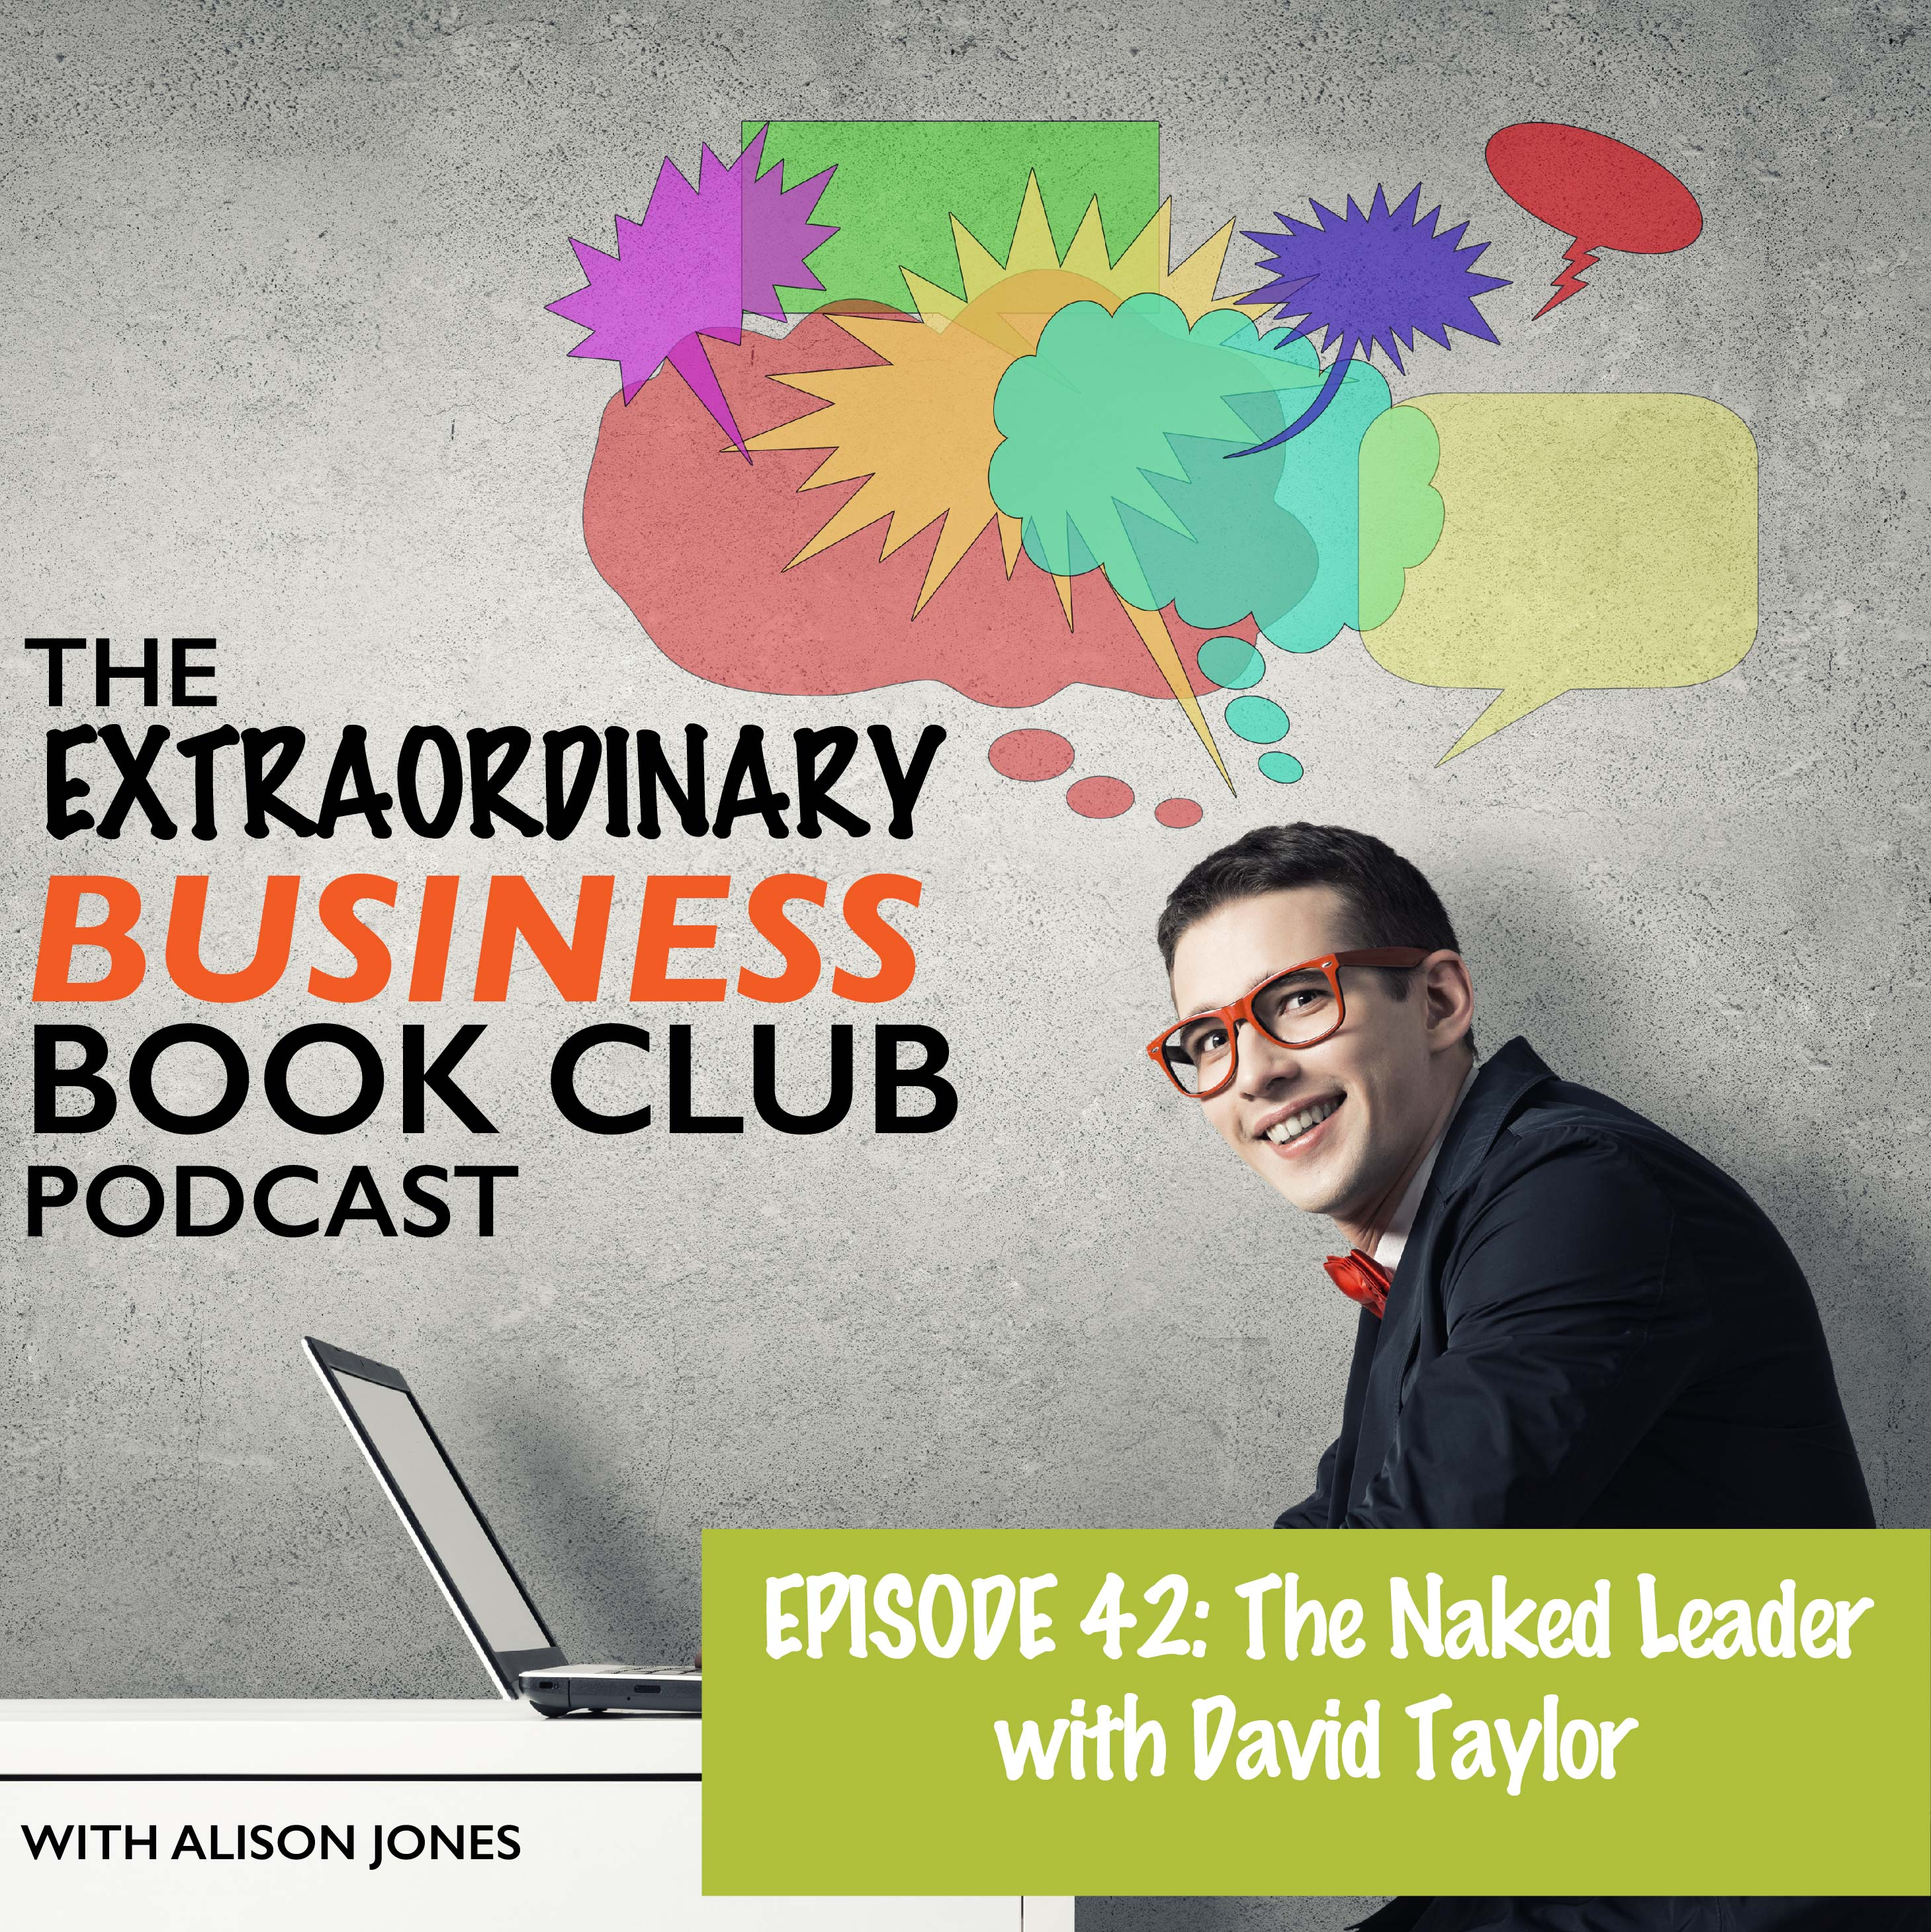 Episode 42 - The Naked Leader with David Taylor - The